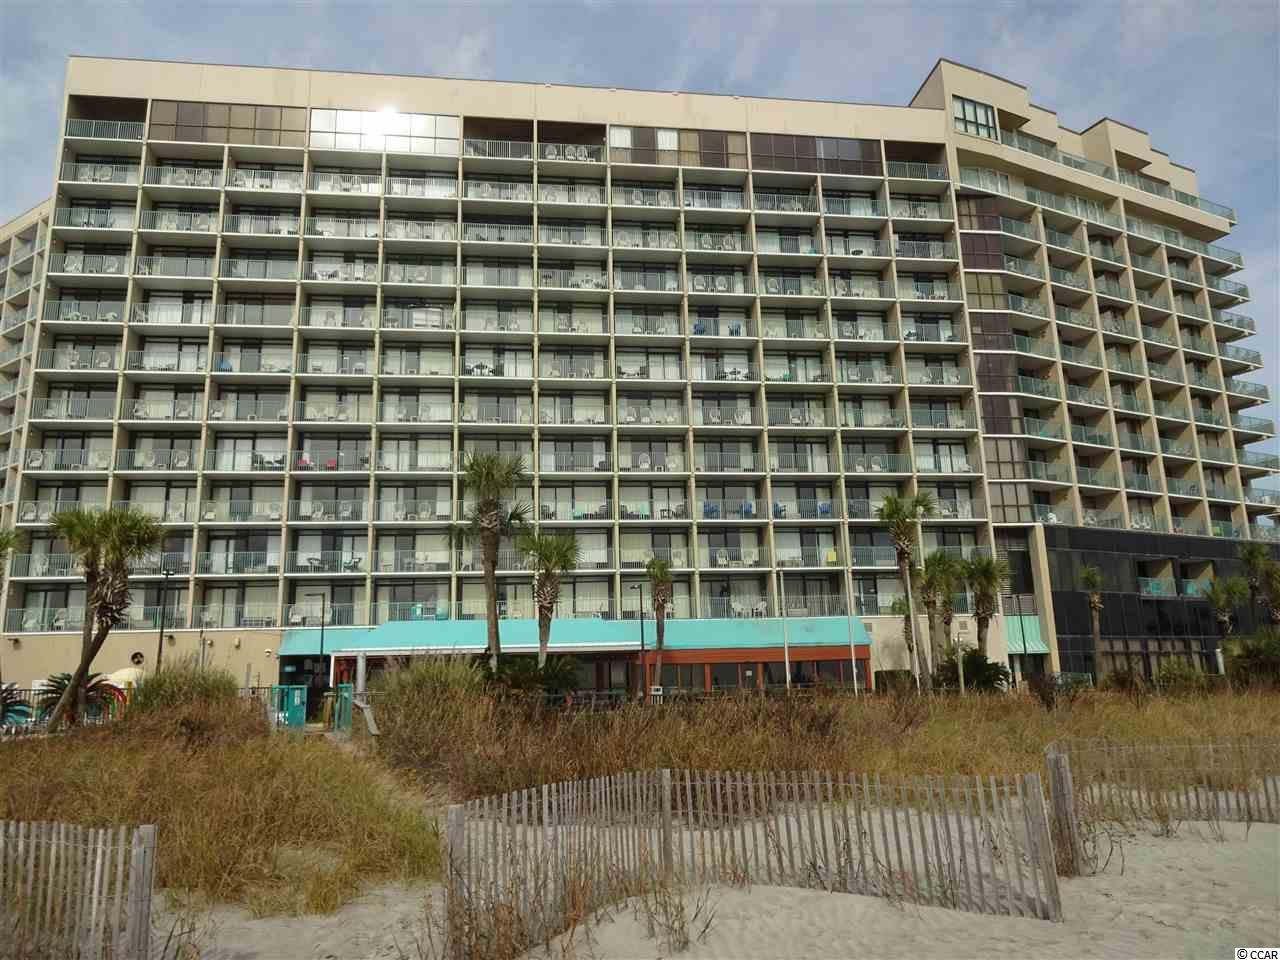 Ocean Front Condo in SAND DUNES PHII : Myrtle Beach South Carolina